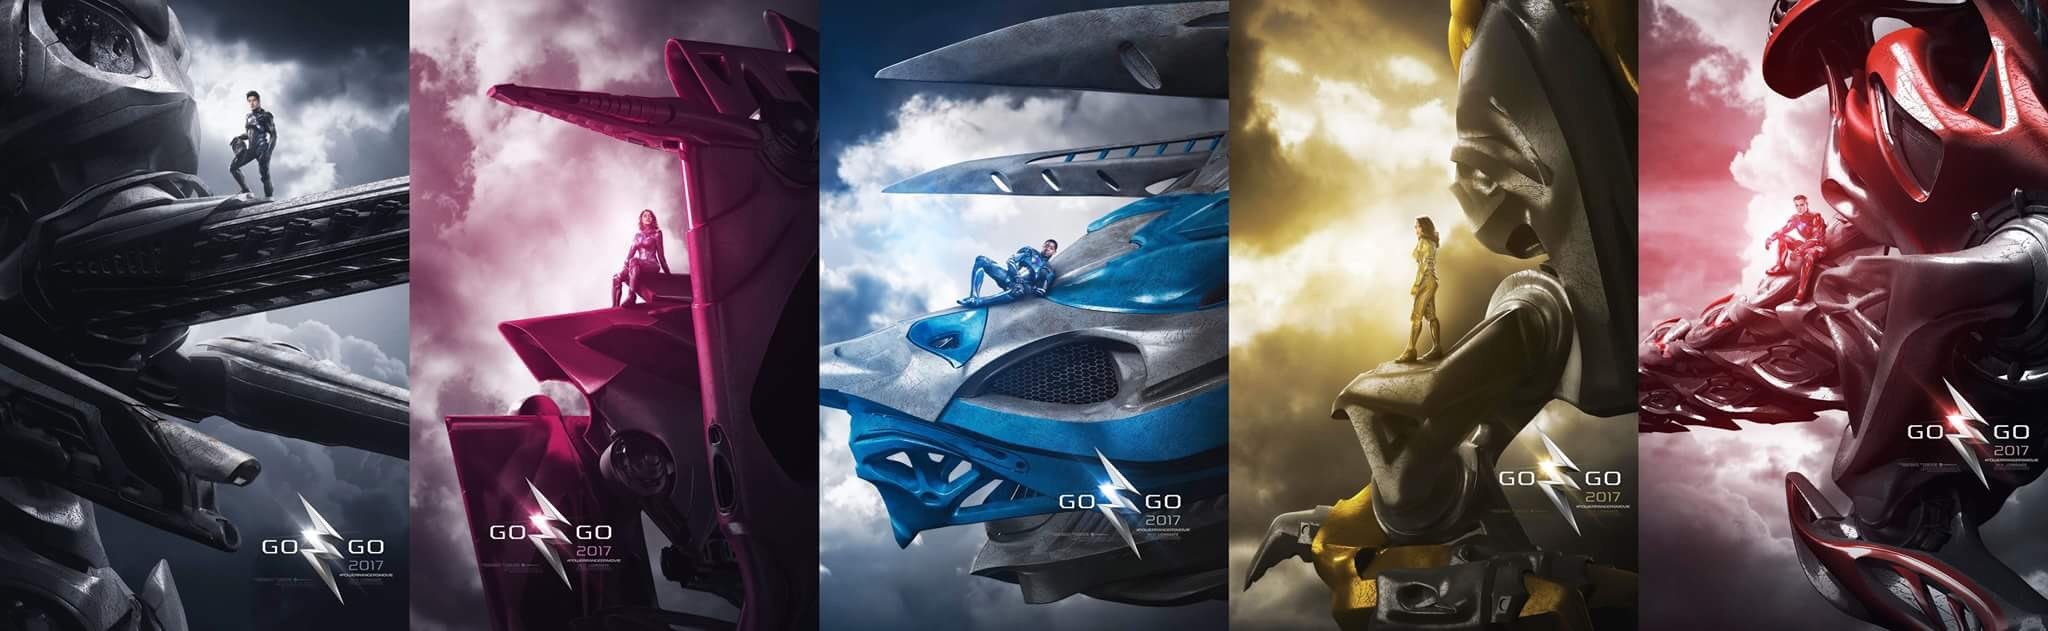 Power Rangers Character Posters Unveiled 1